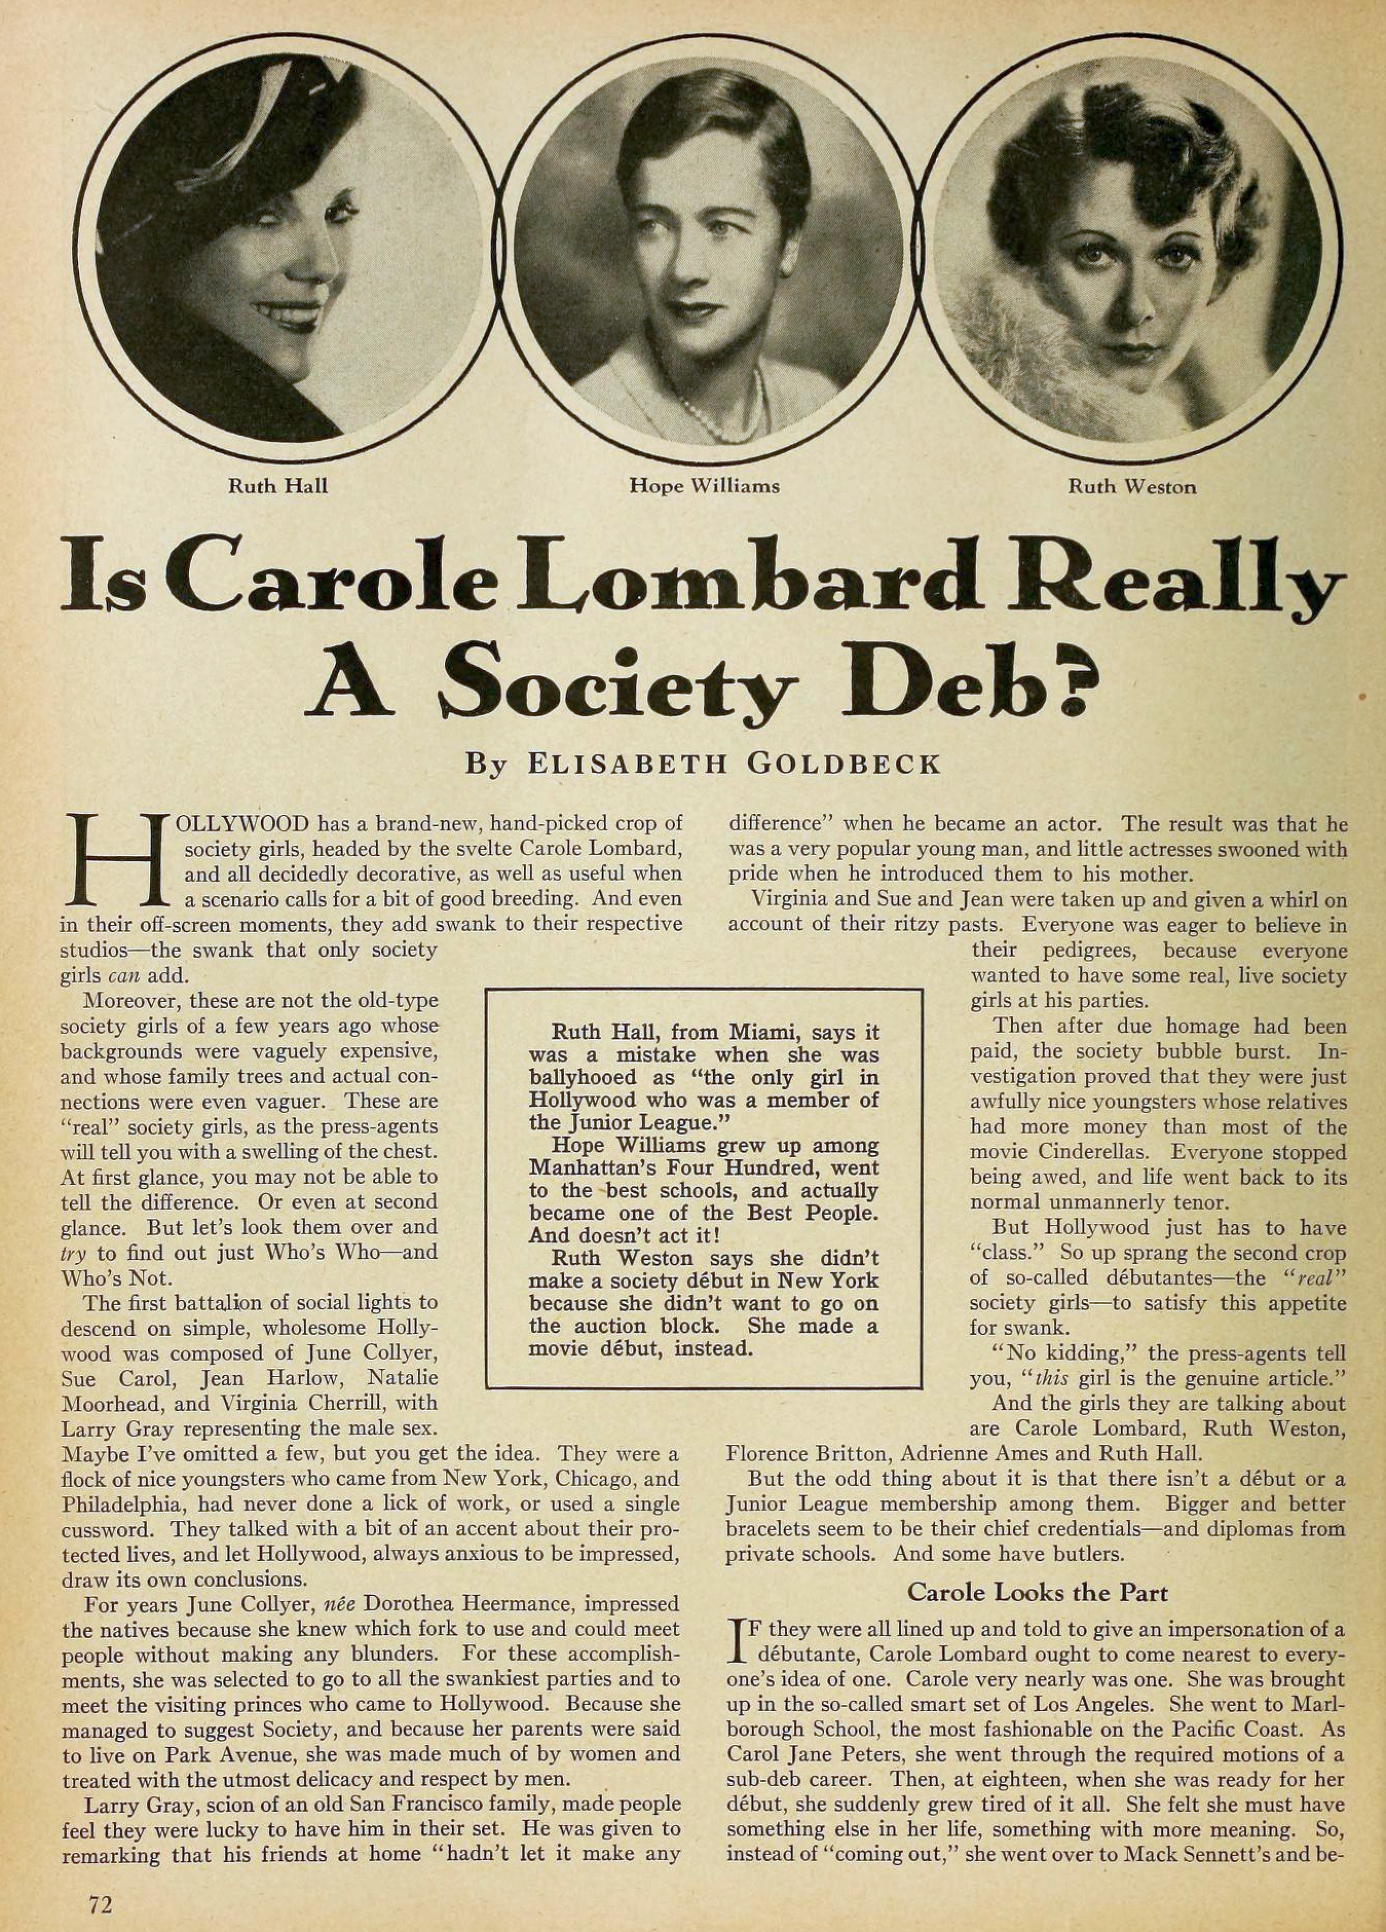 carole lombard motion picture jan 1932 society deb 00a